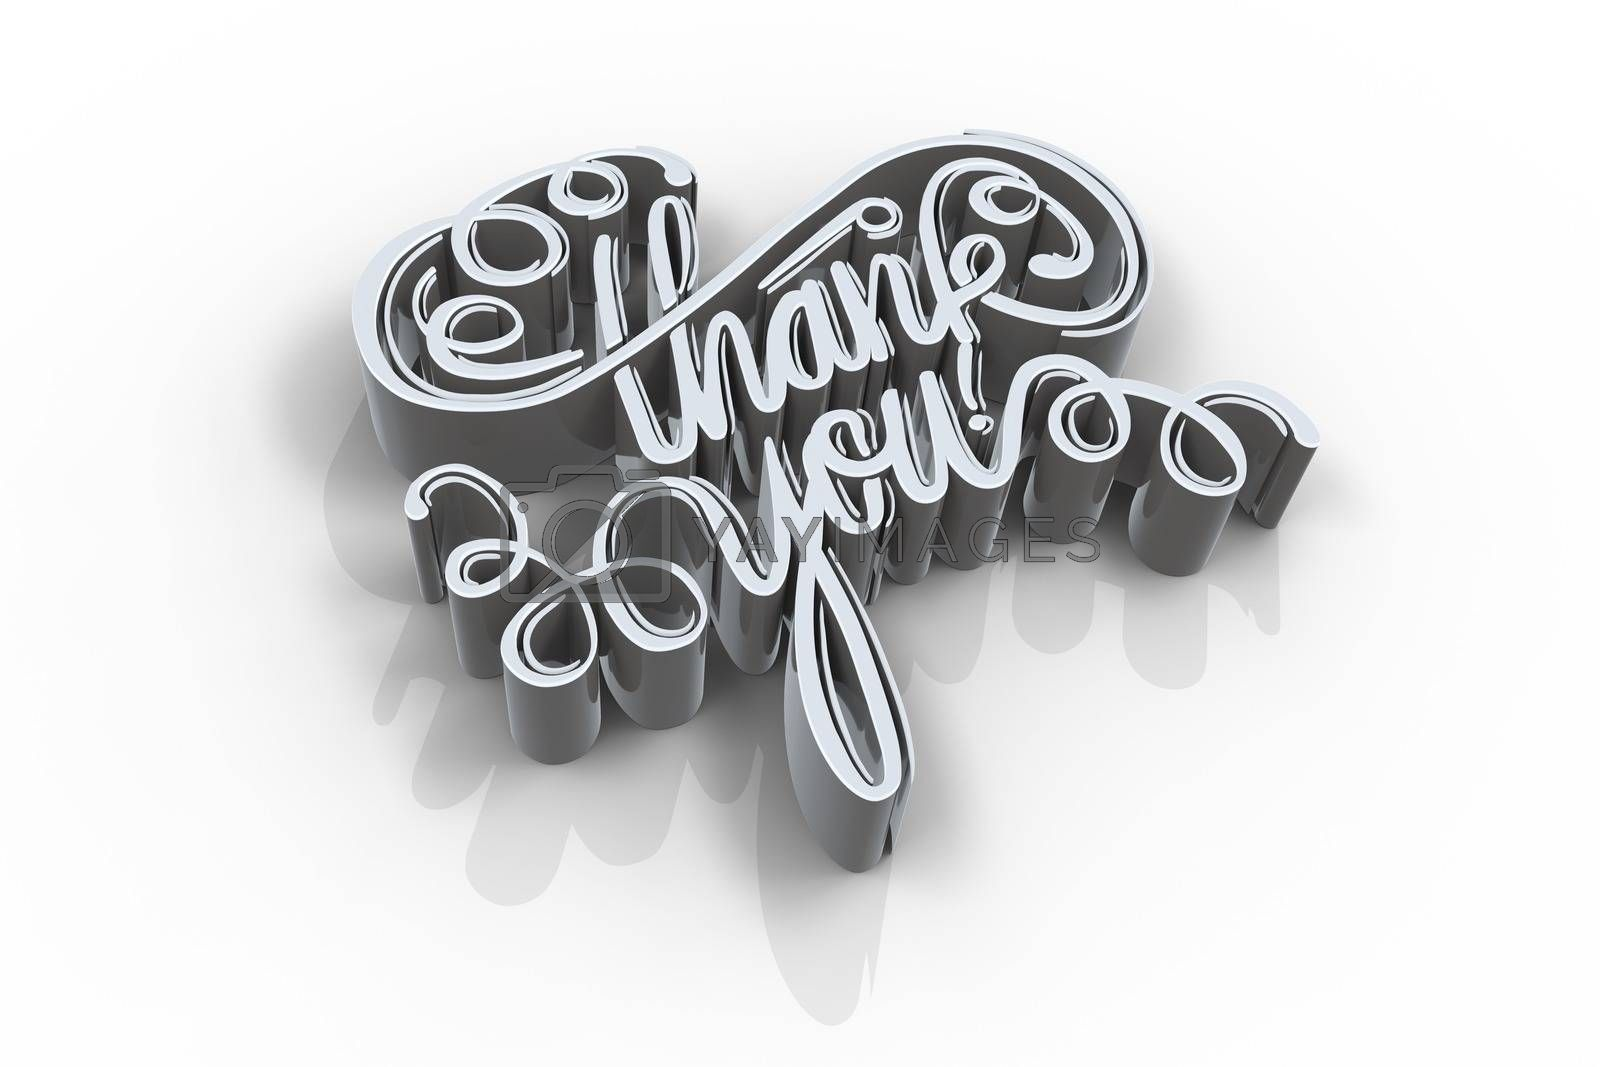 Illustration of thank you text against white background